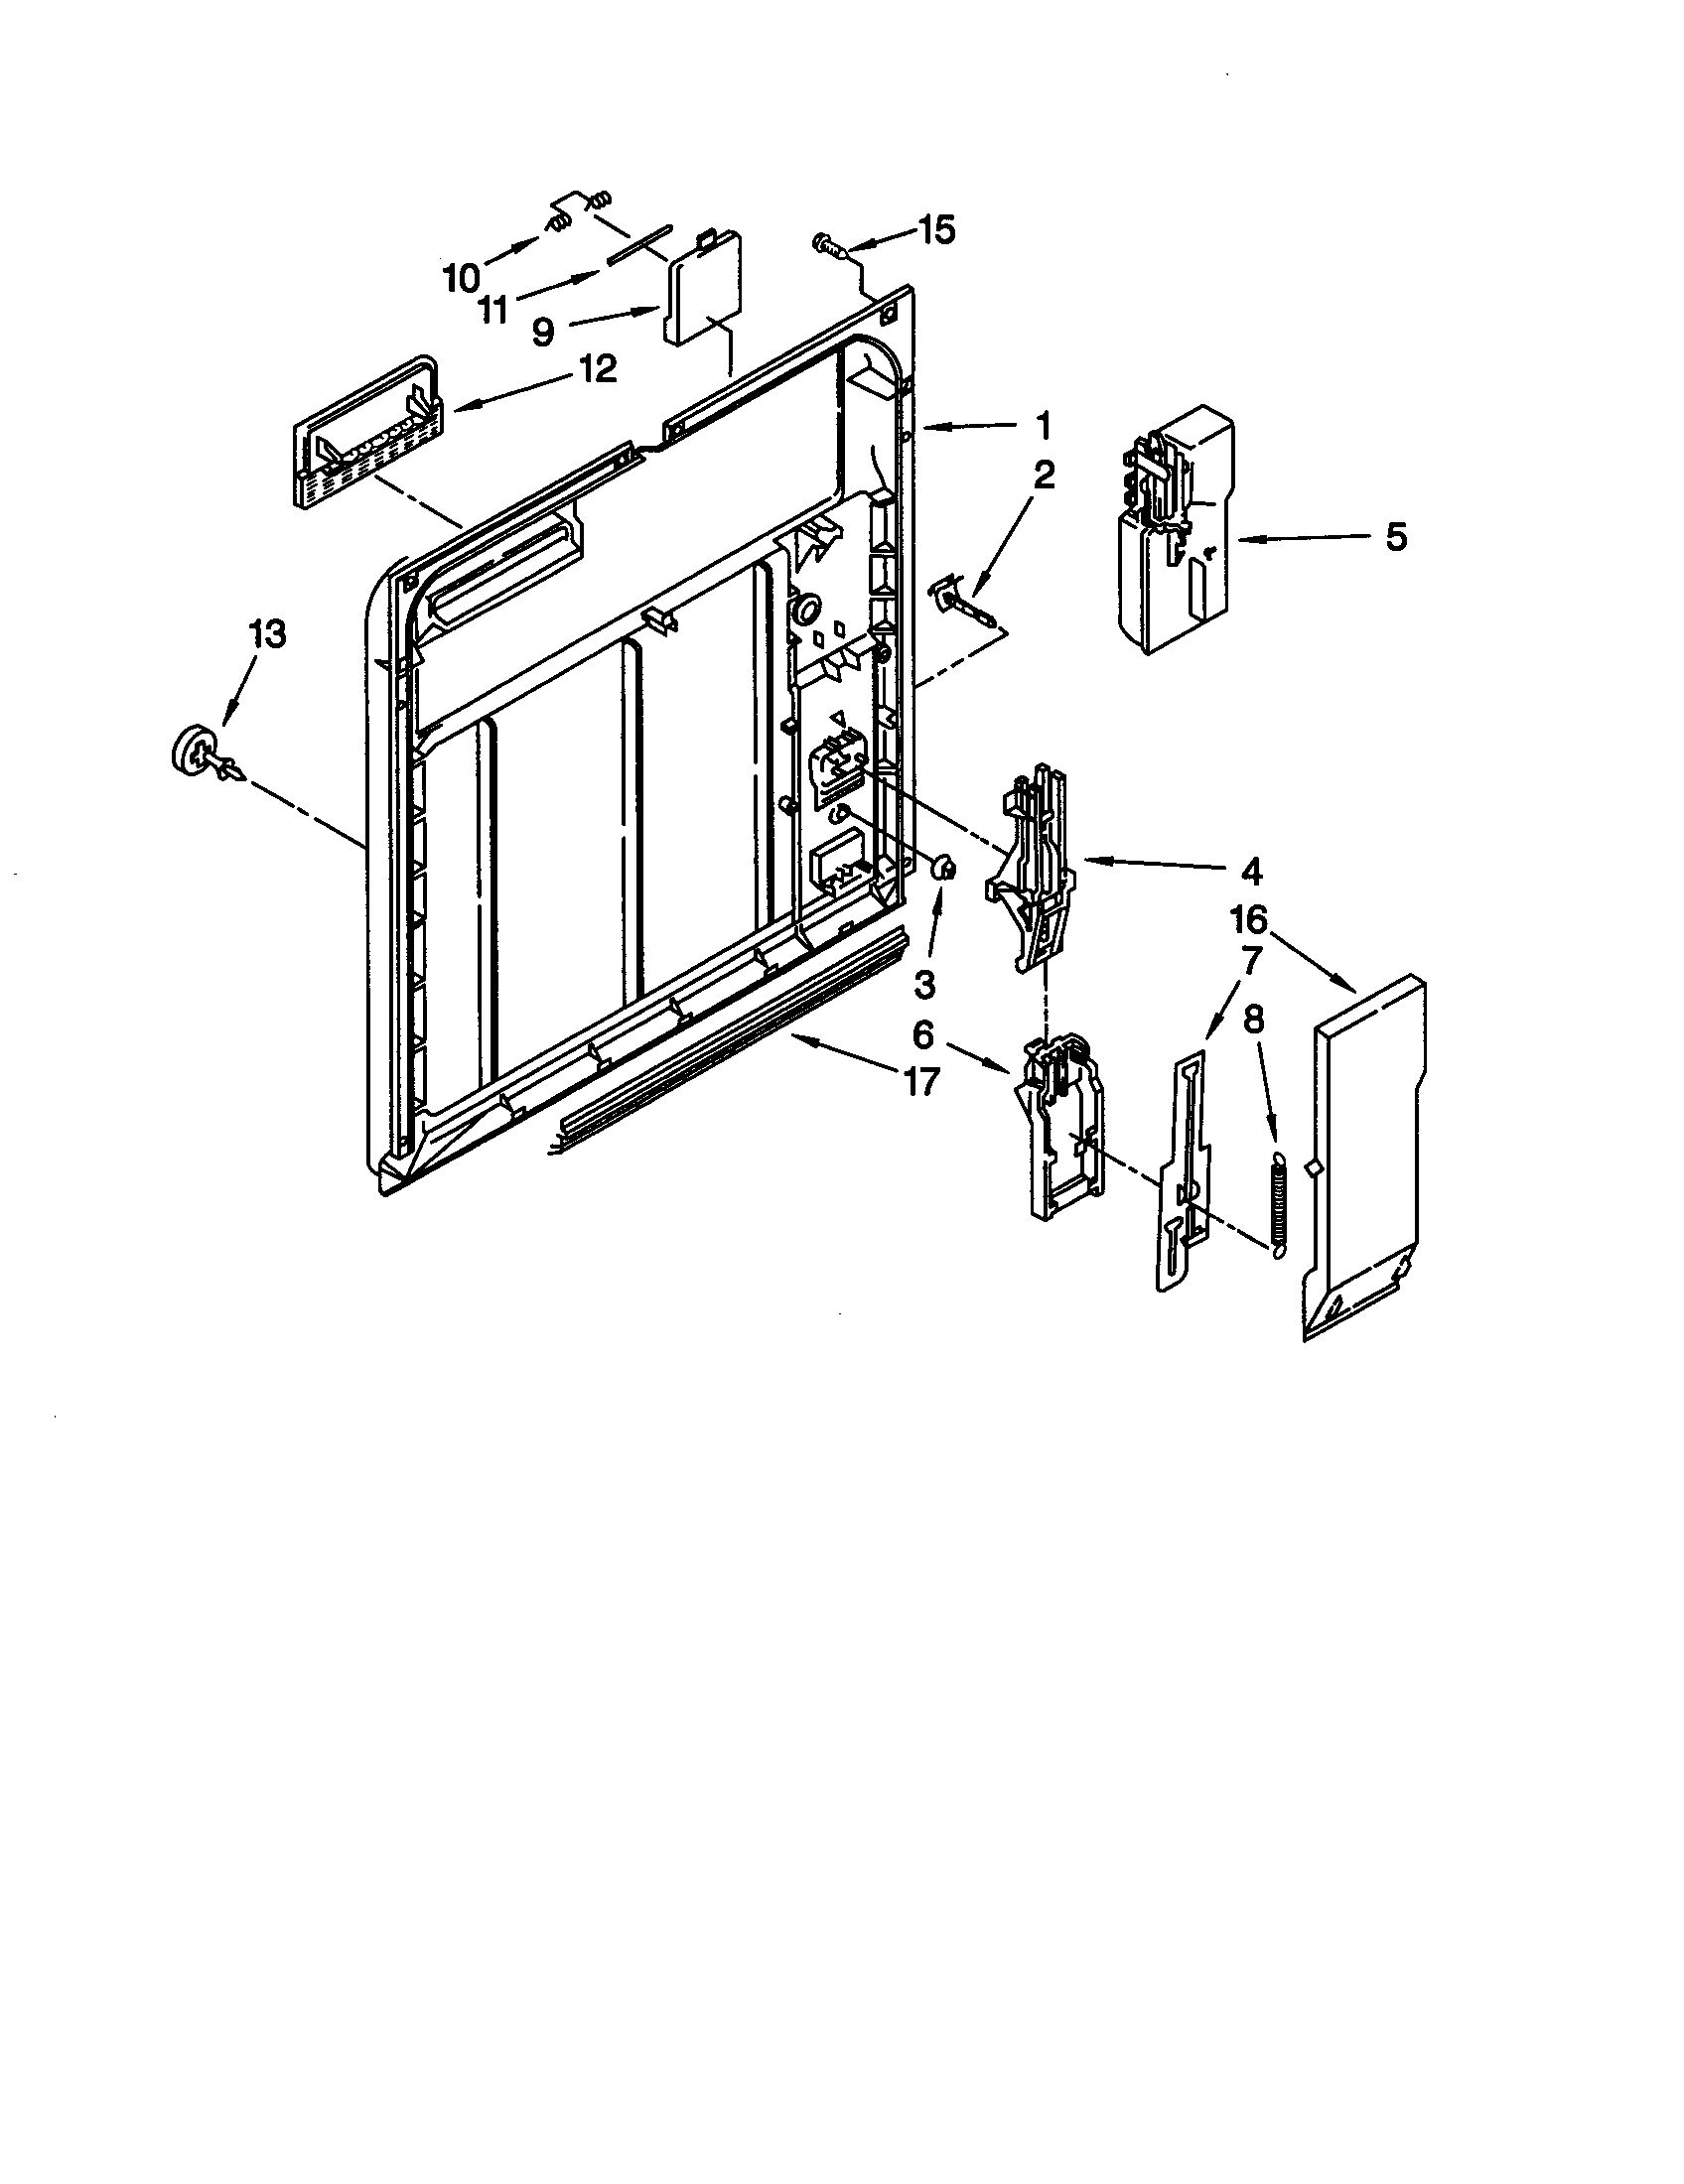 INNER DOOR Diagram & Parts List for Model du810dwgu1